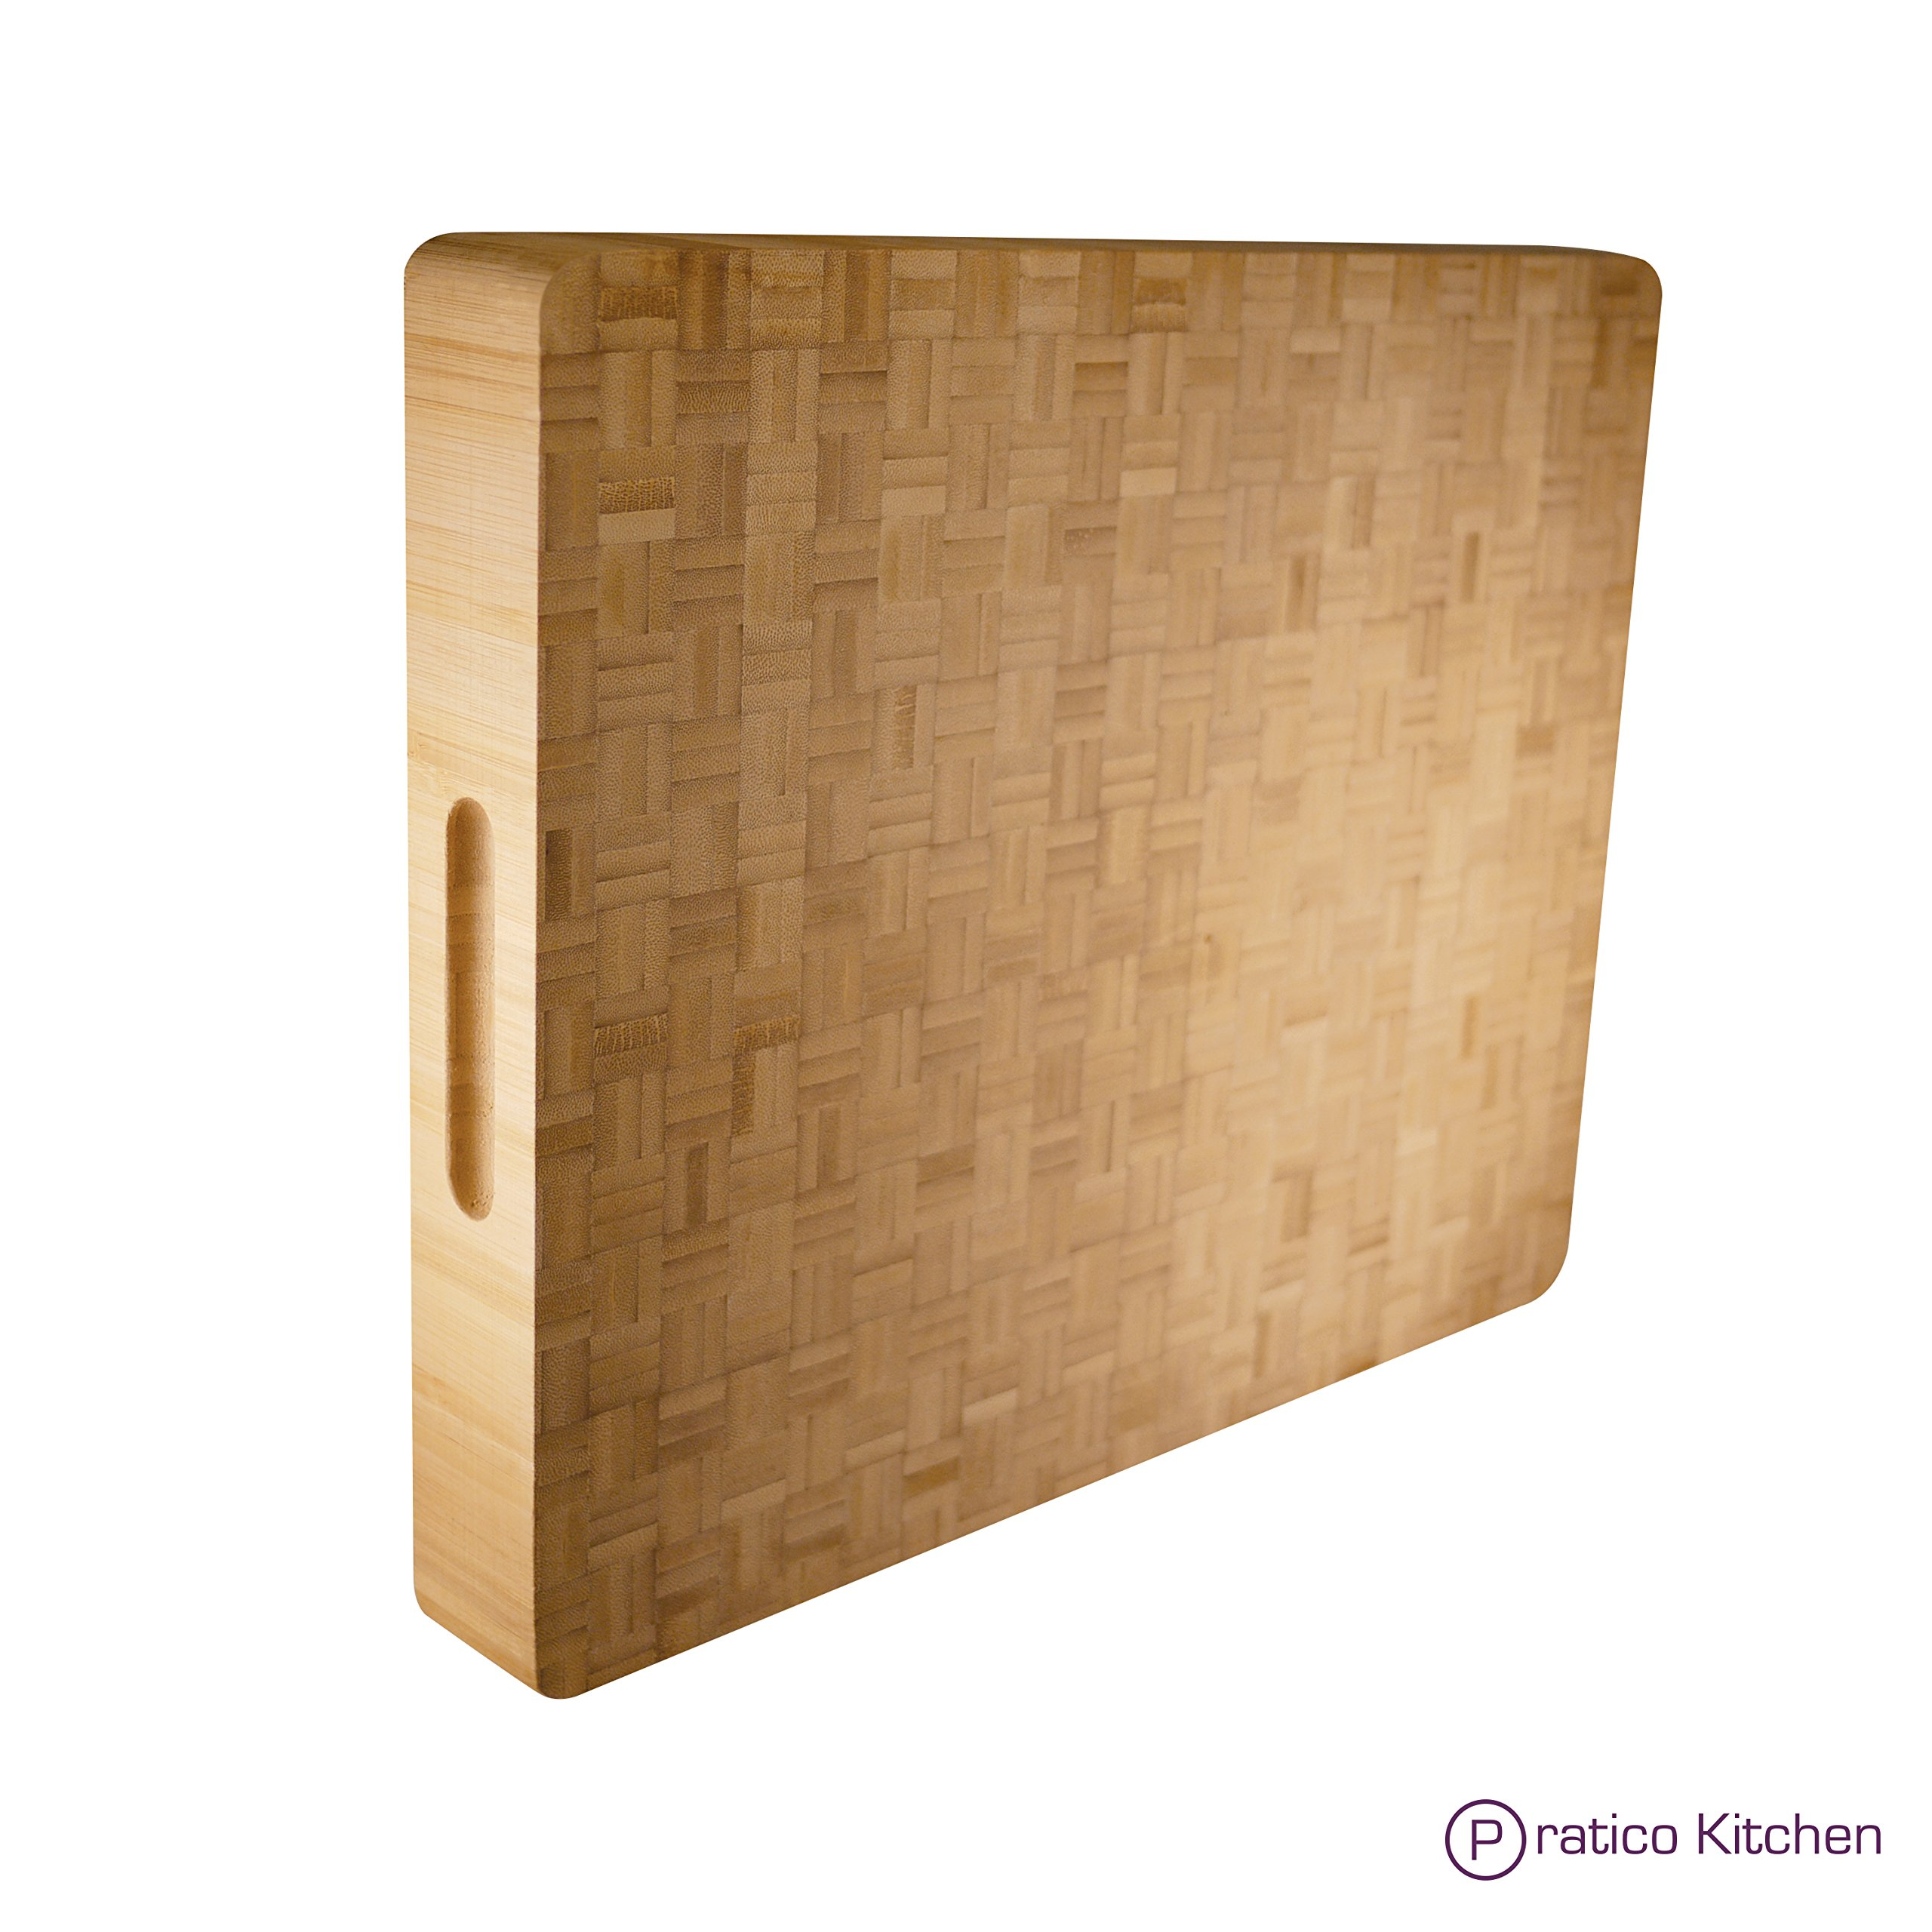 Pratico Kitchen Reversible Organic End Grain Butcher Chopping Block & Serving Tray - 16.5 x 13.5 x 2 inches by Pratico Kitchen (Image #1)